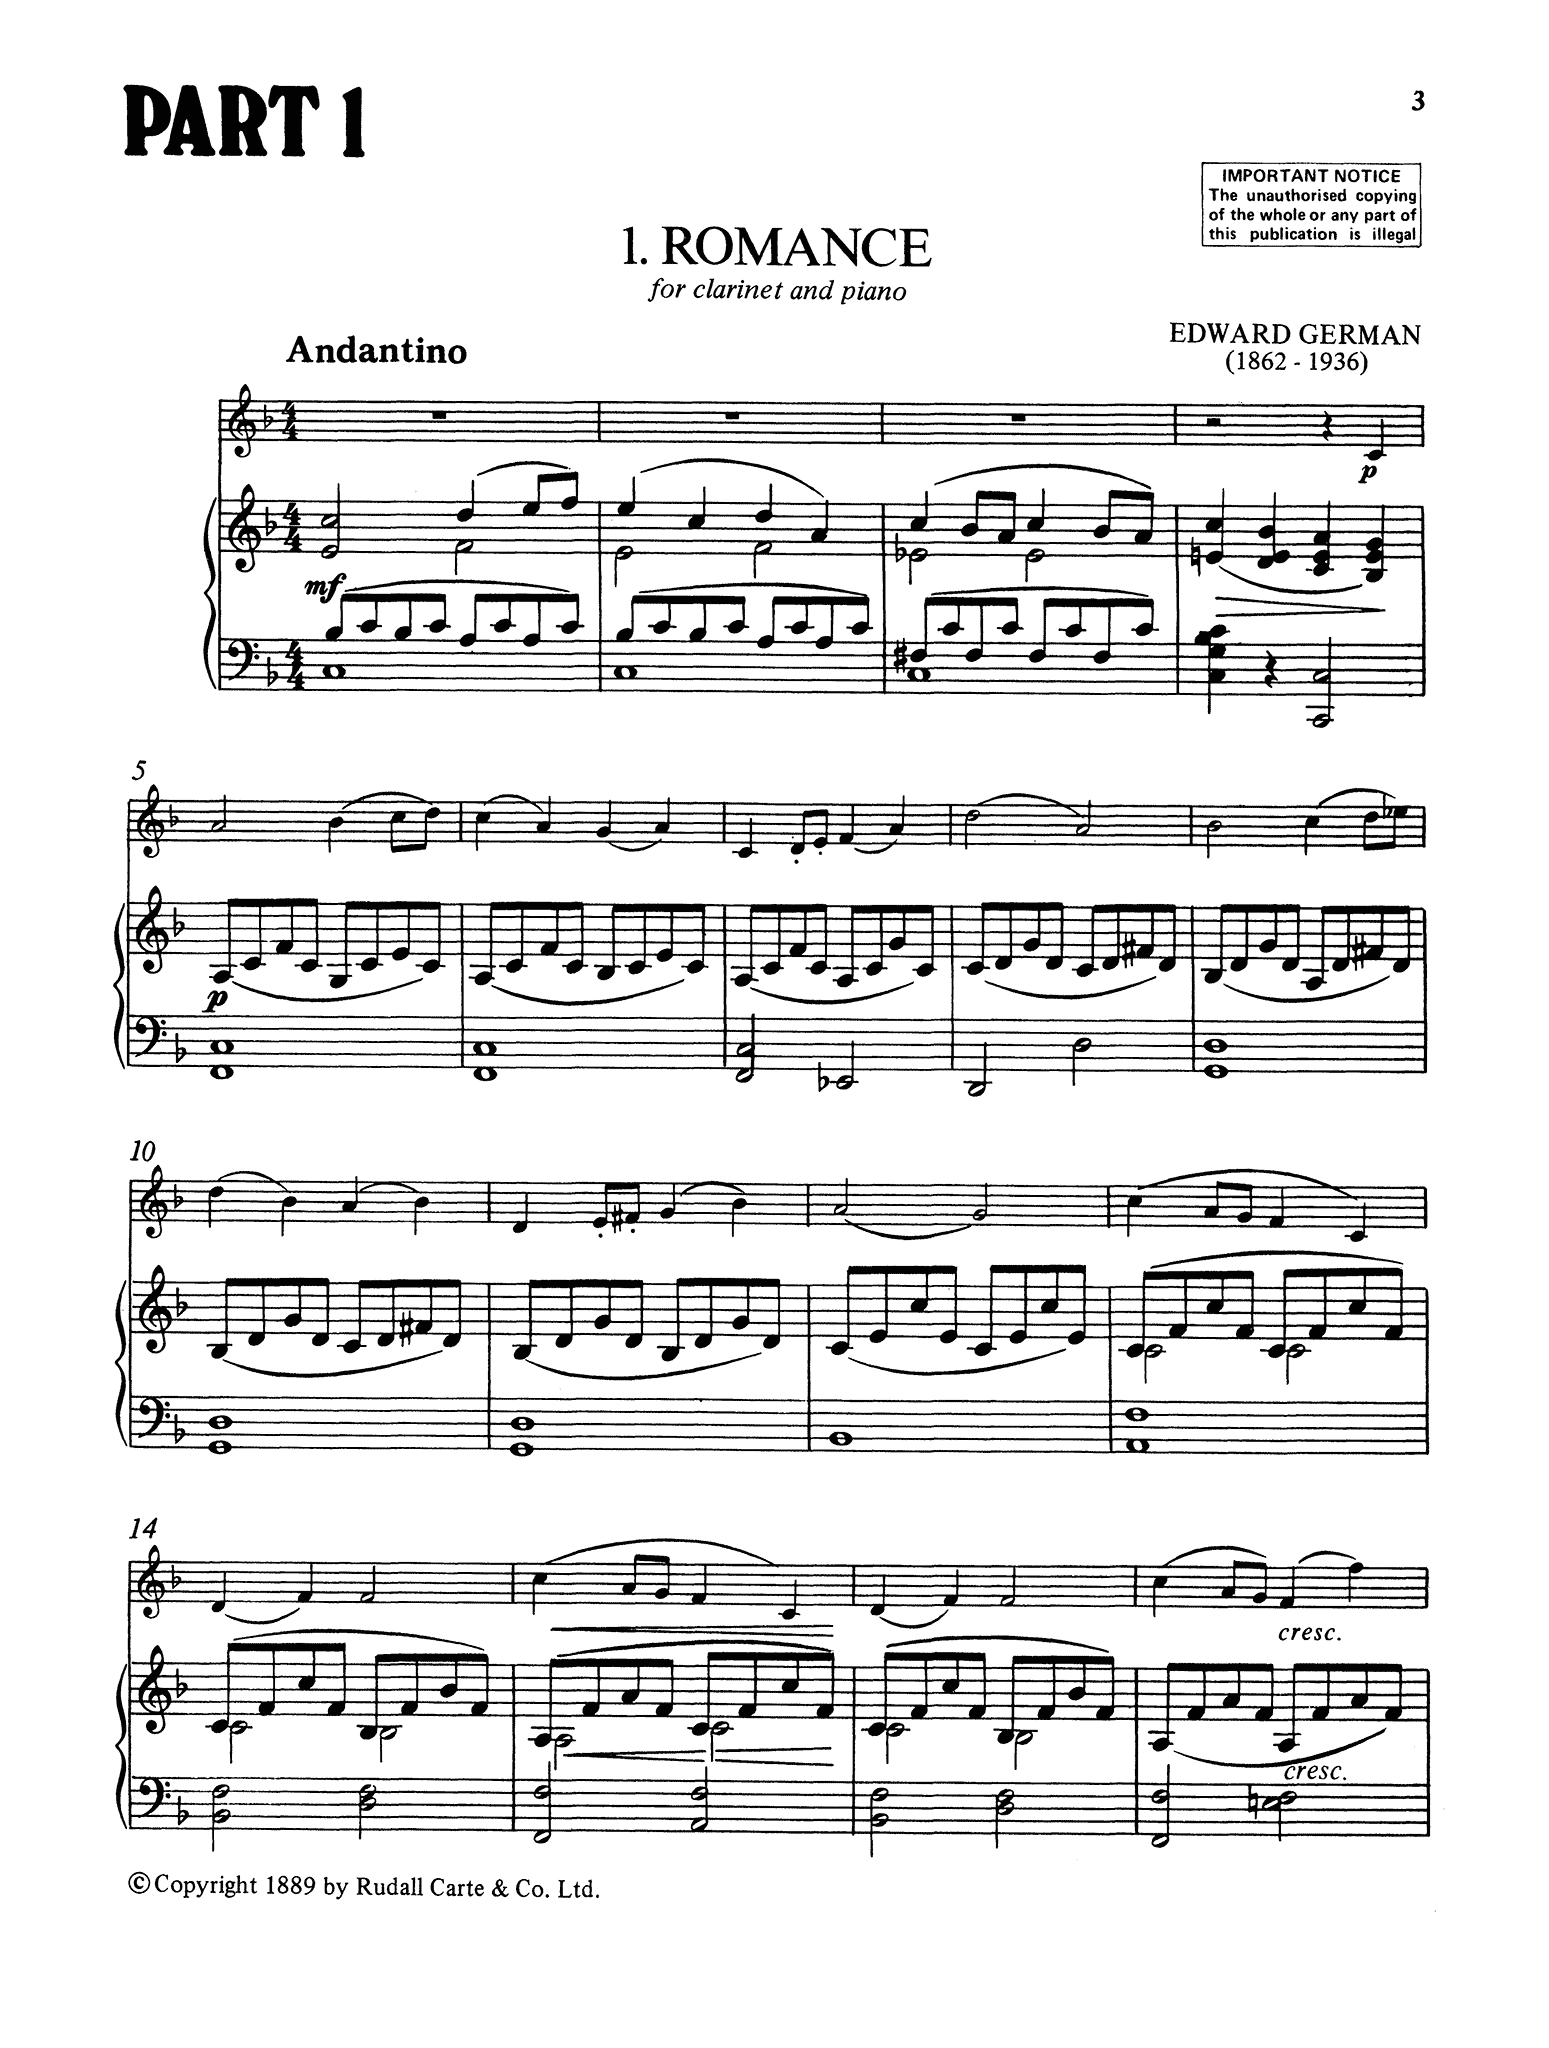 Edward German Romance Clarinet & Piano Score